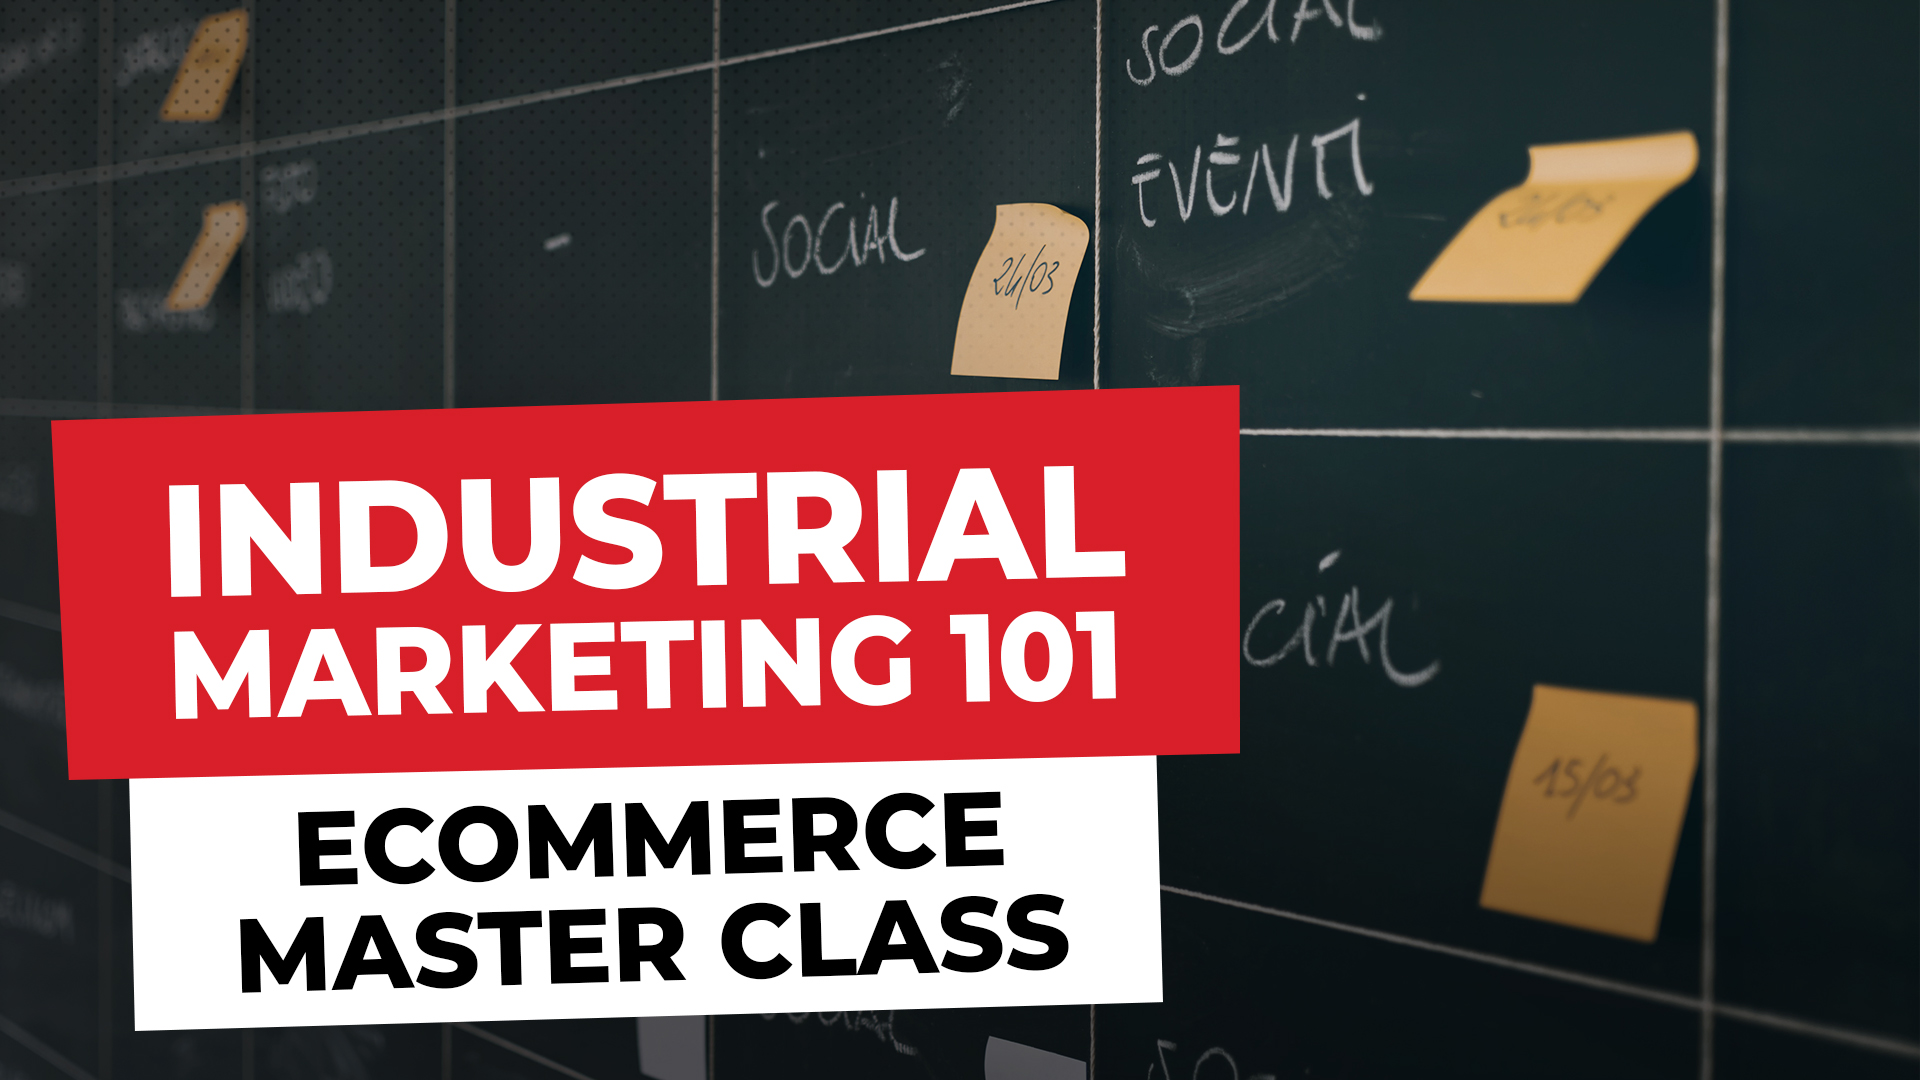 Episode 17: Introducing Industrial Marketing 101 - eCommerce Master Class